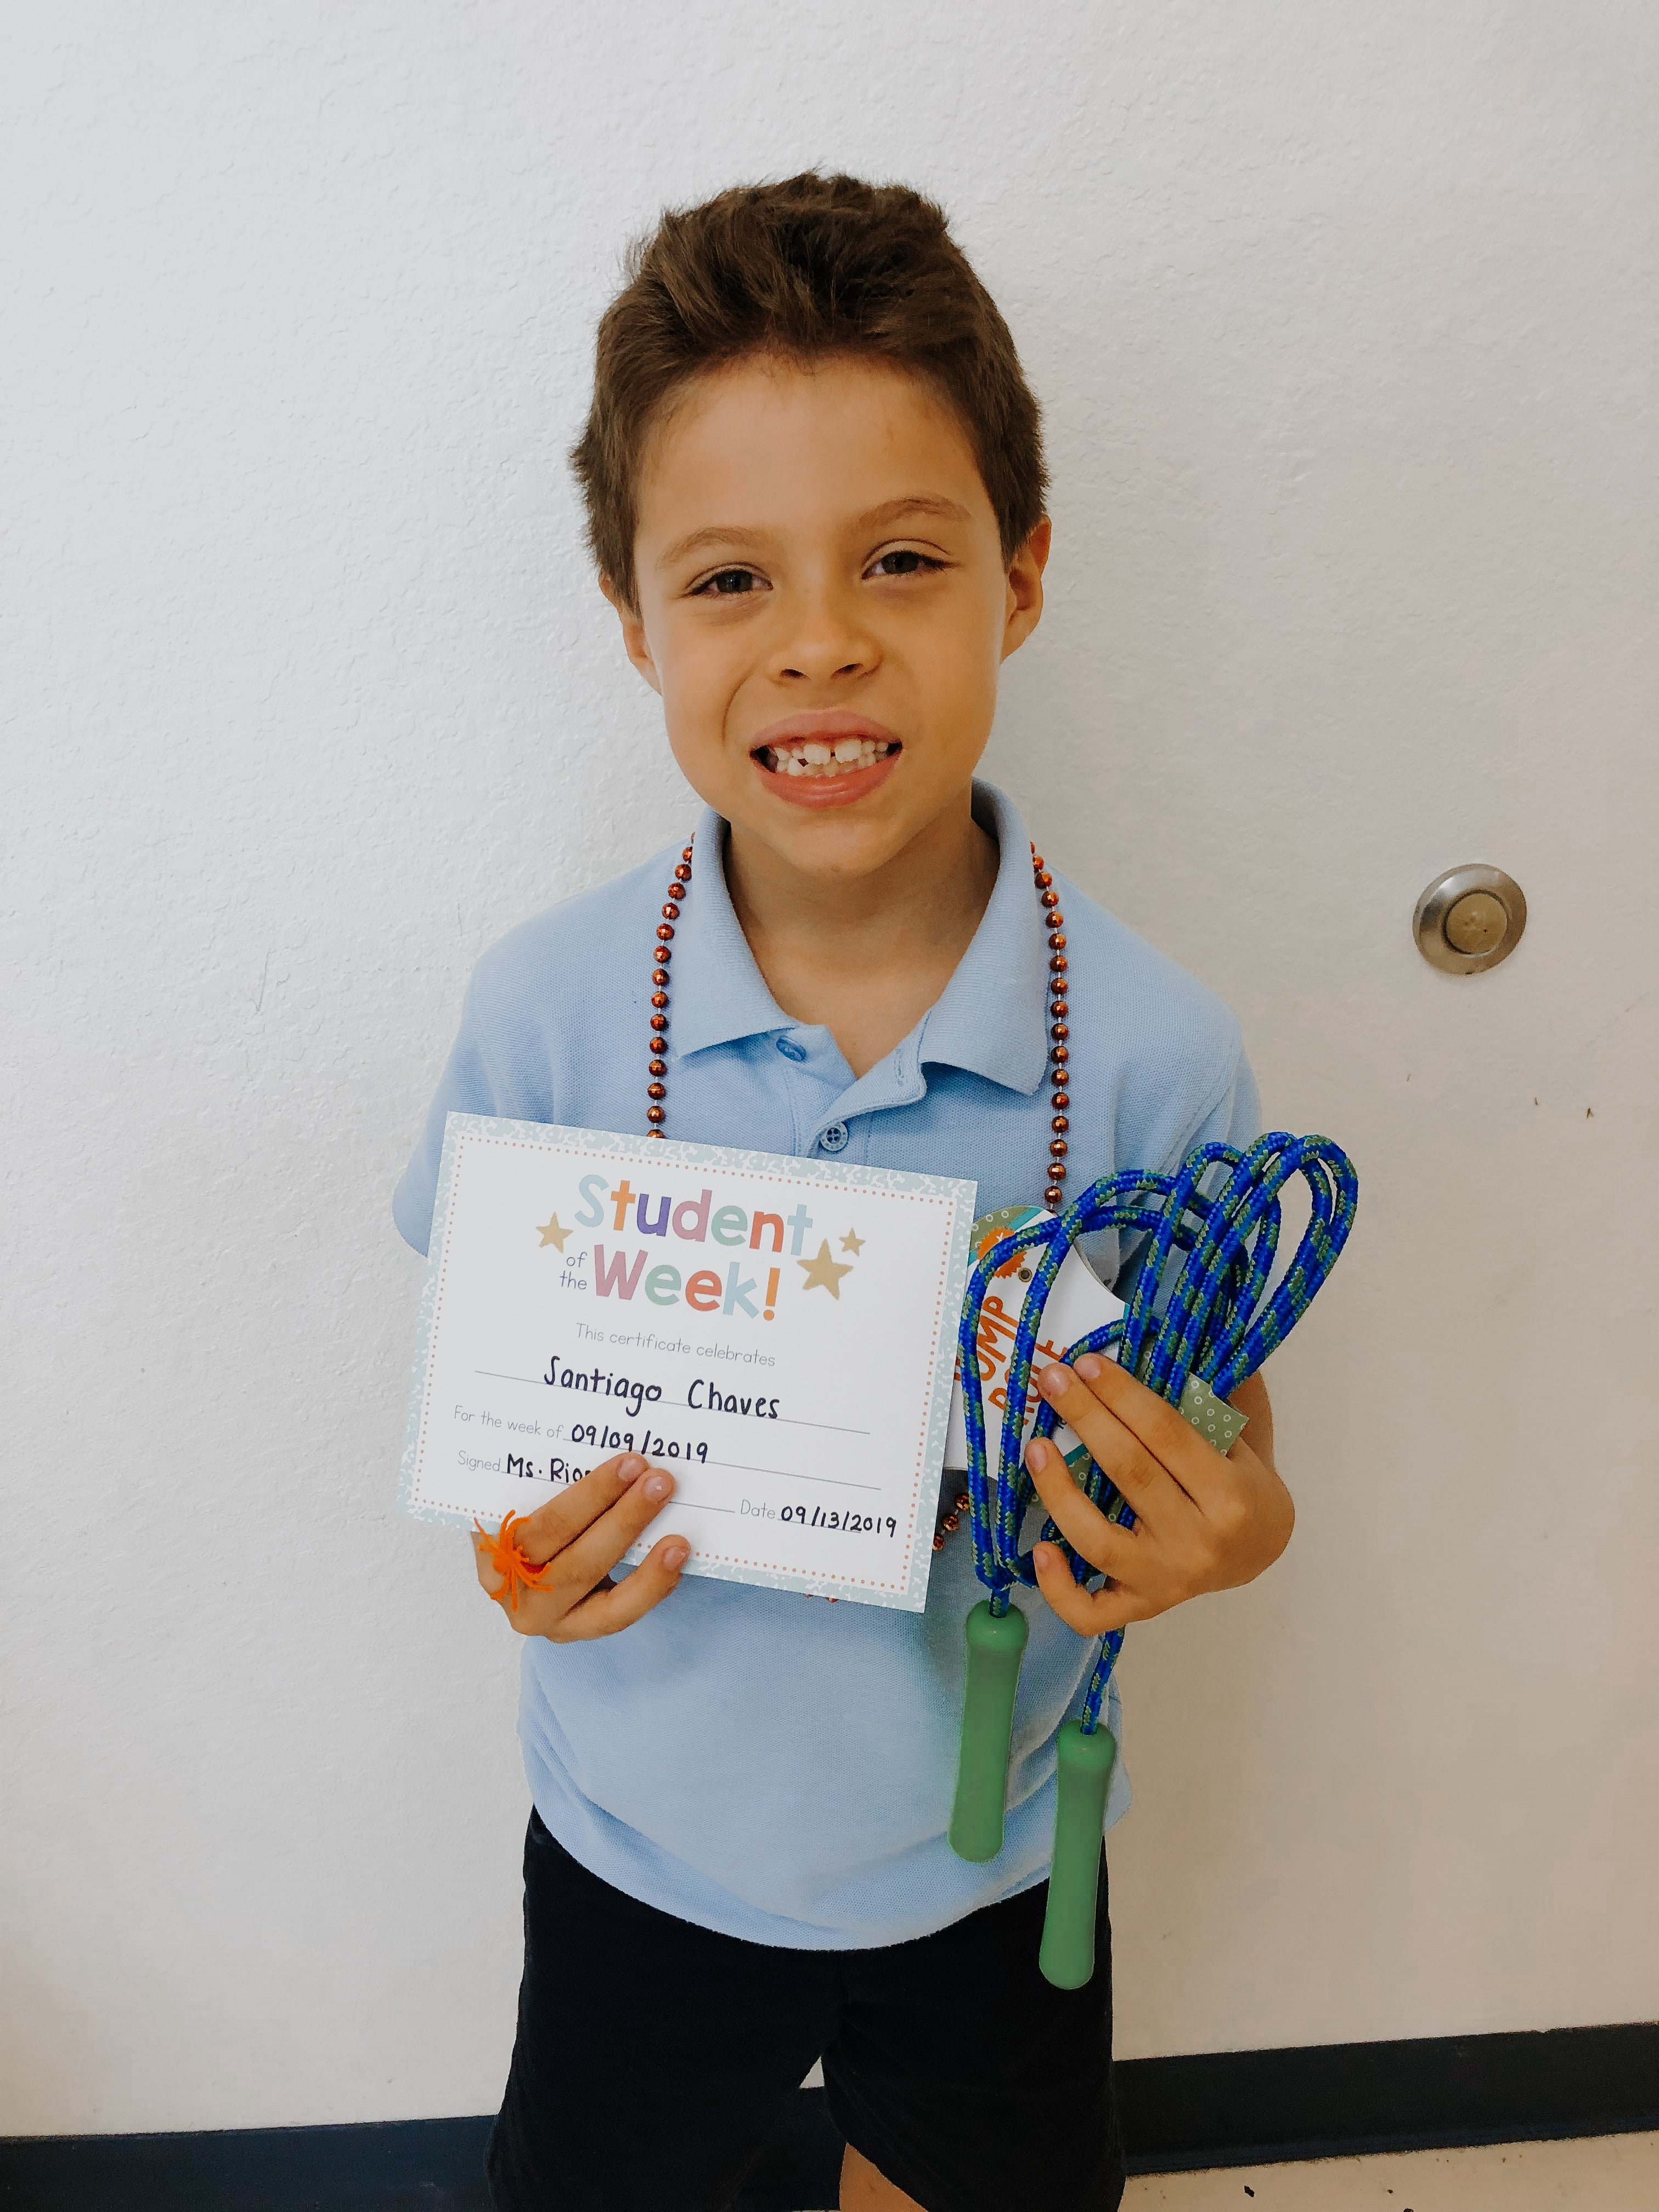 STUDENT OF THE WEEK! Image number 1